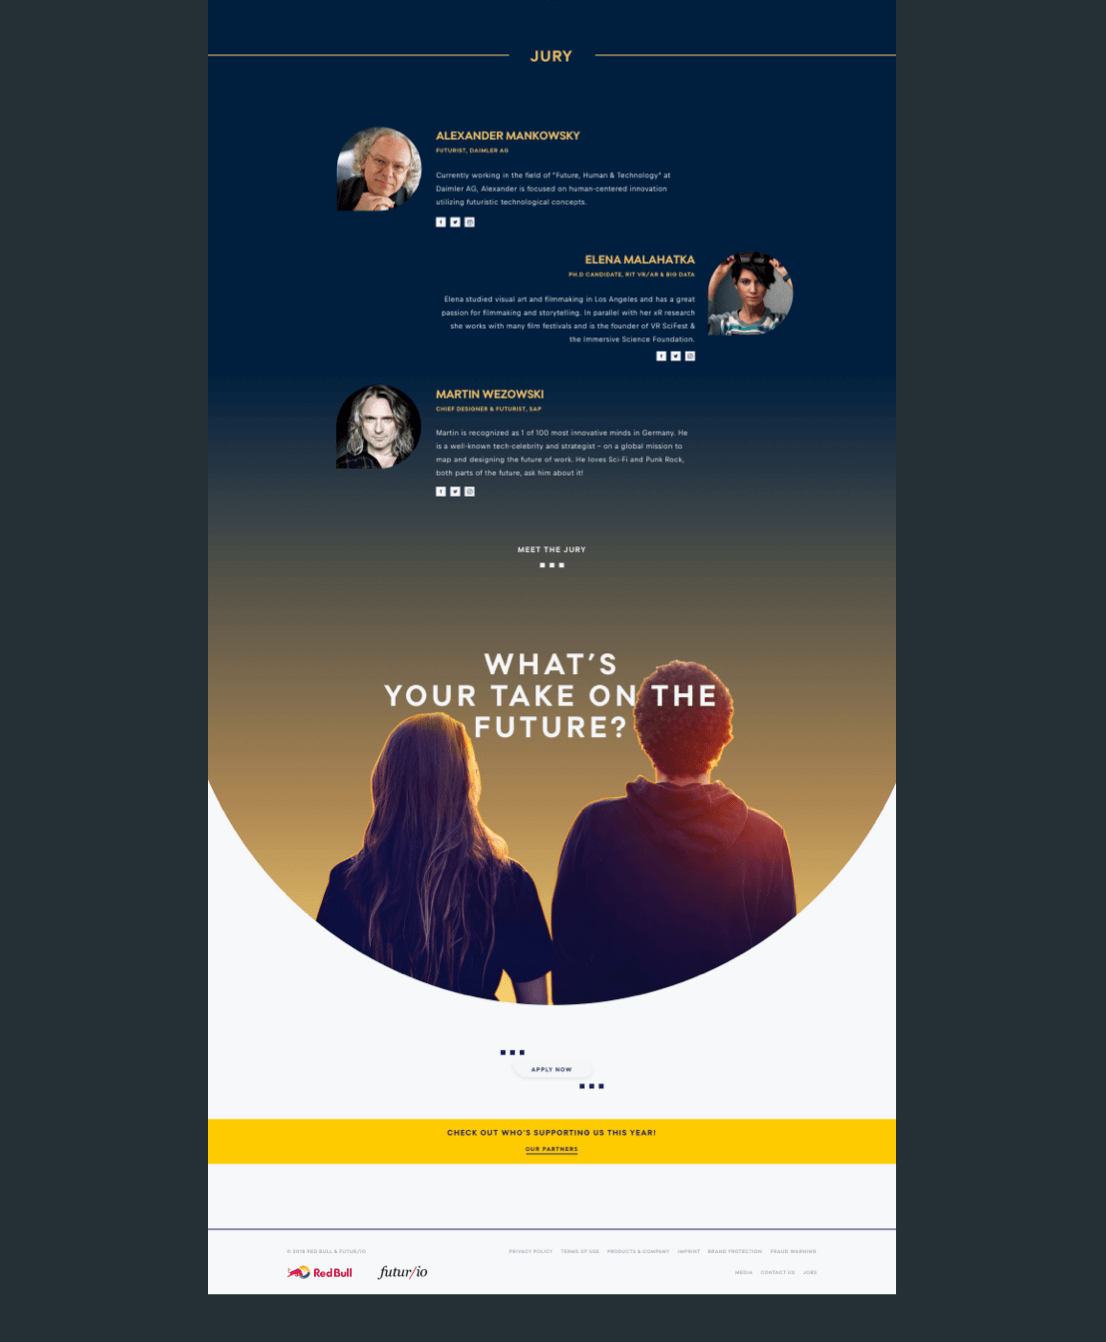 The bottom part of the home page showing a sunset gradient